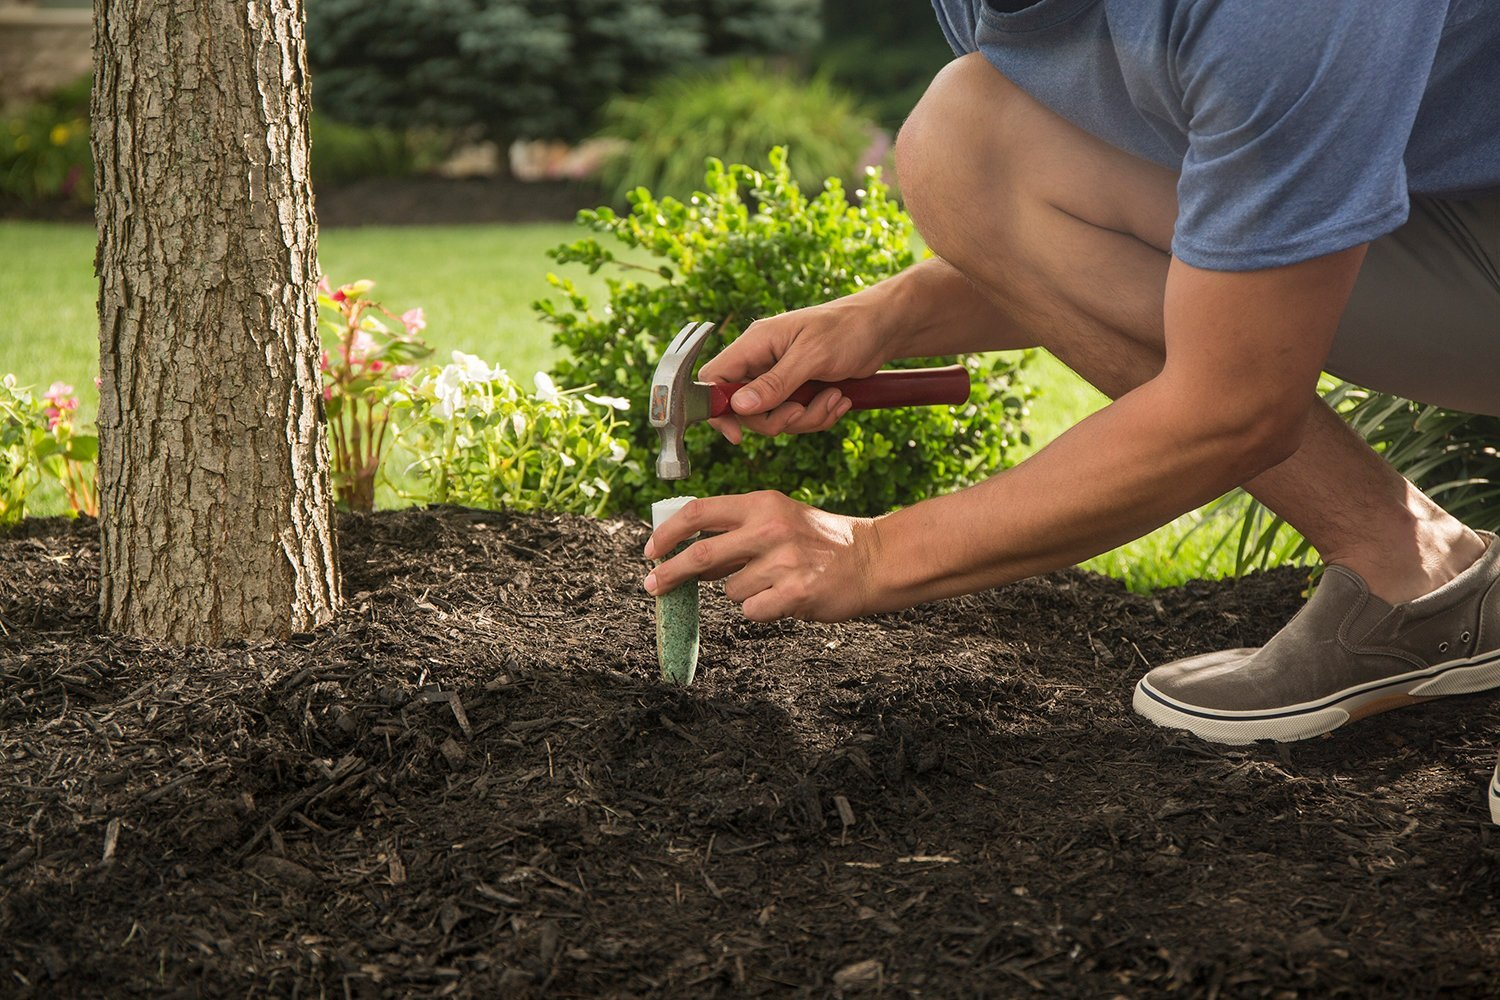 Amazon.com : Miracle-Gro Fertilizer Spikes for Evergreens, 12-Pack ...